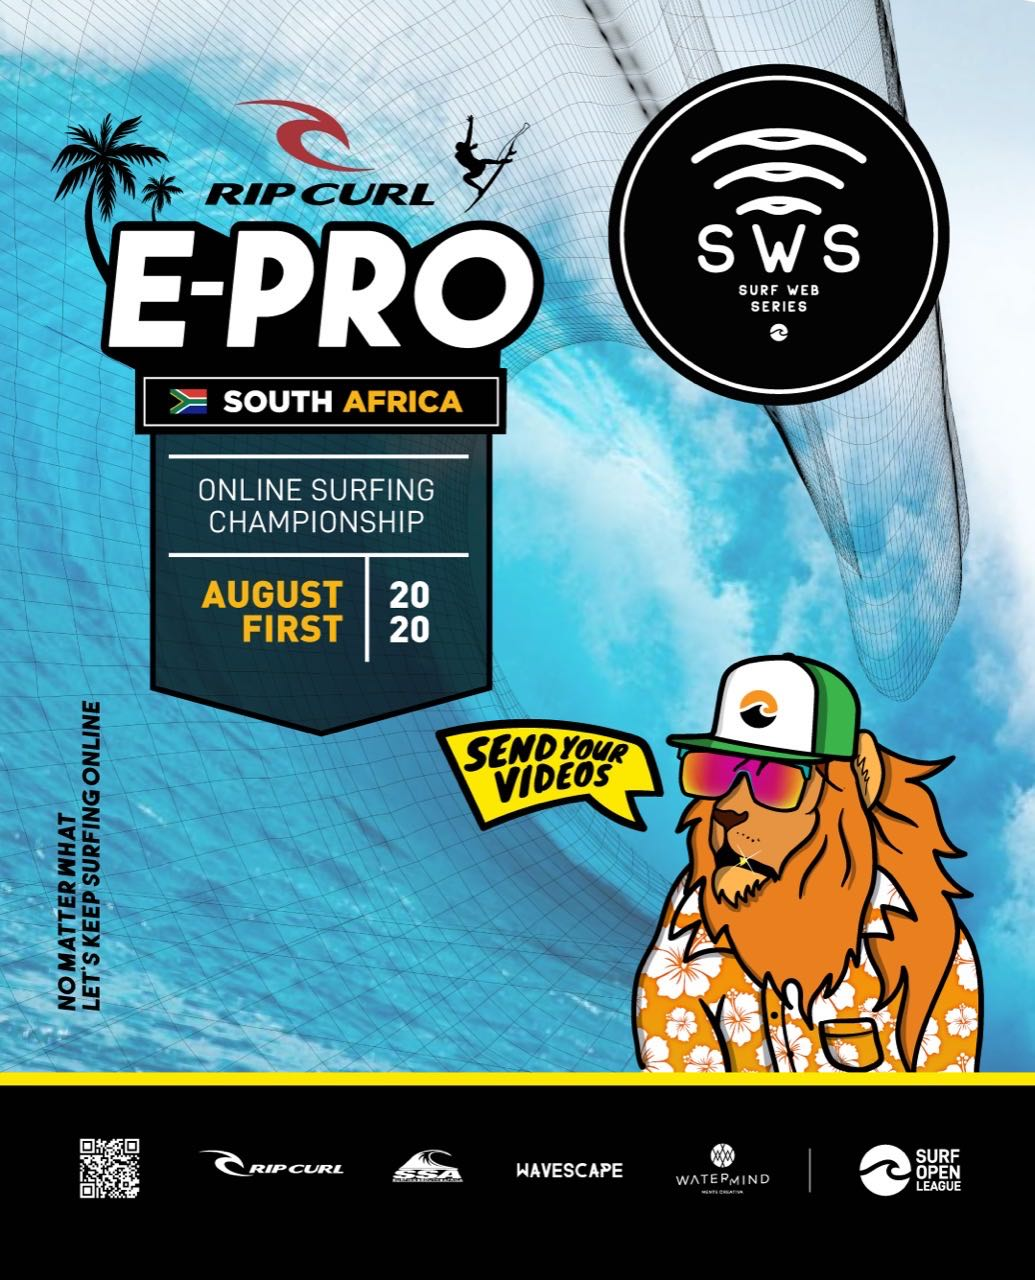 The second contest in the global Surf Web Series – The Rip Curl E-Pro Online Surf Event South Africa, kicks off on the 1 August